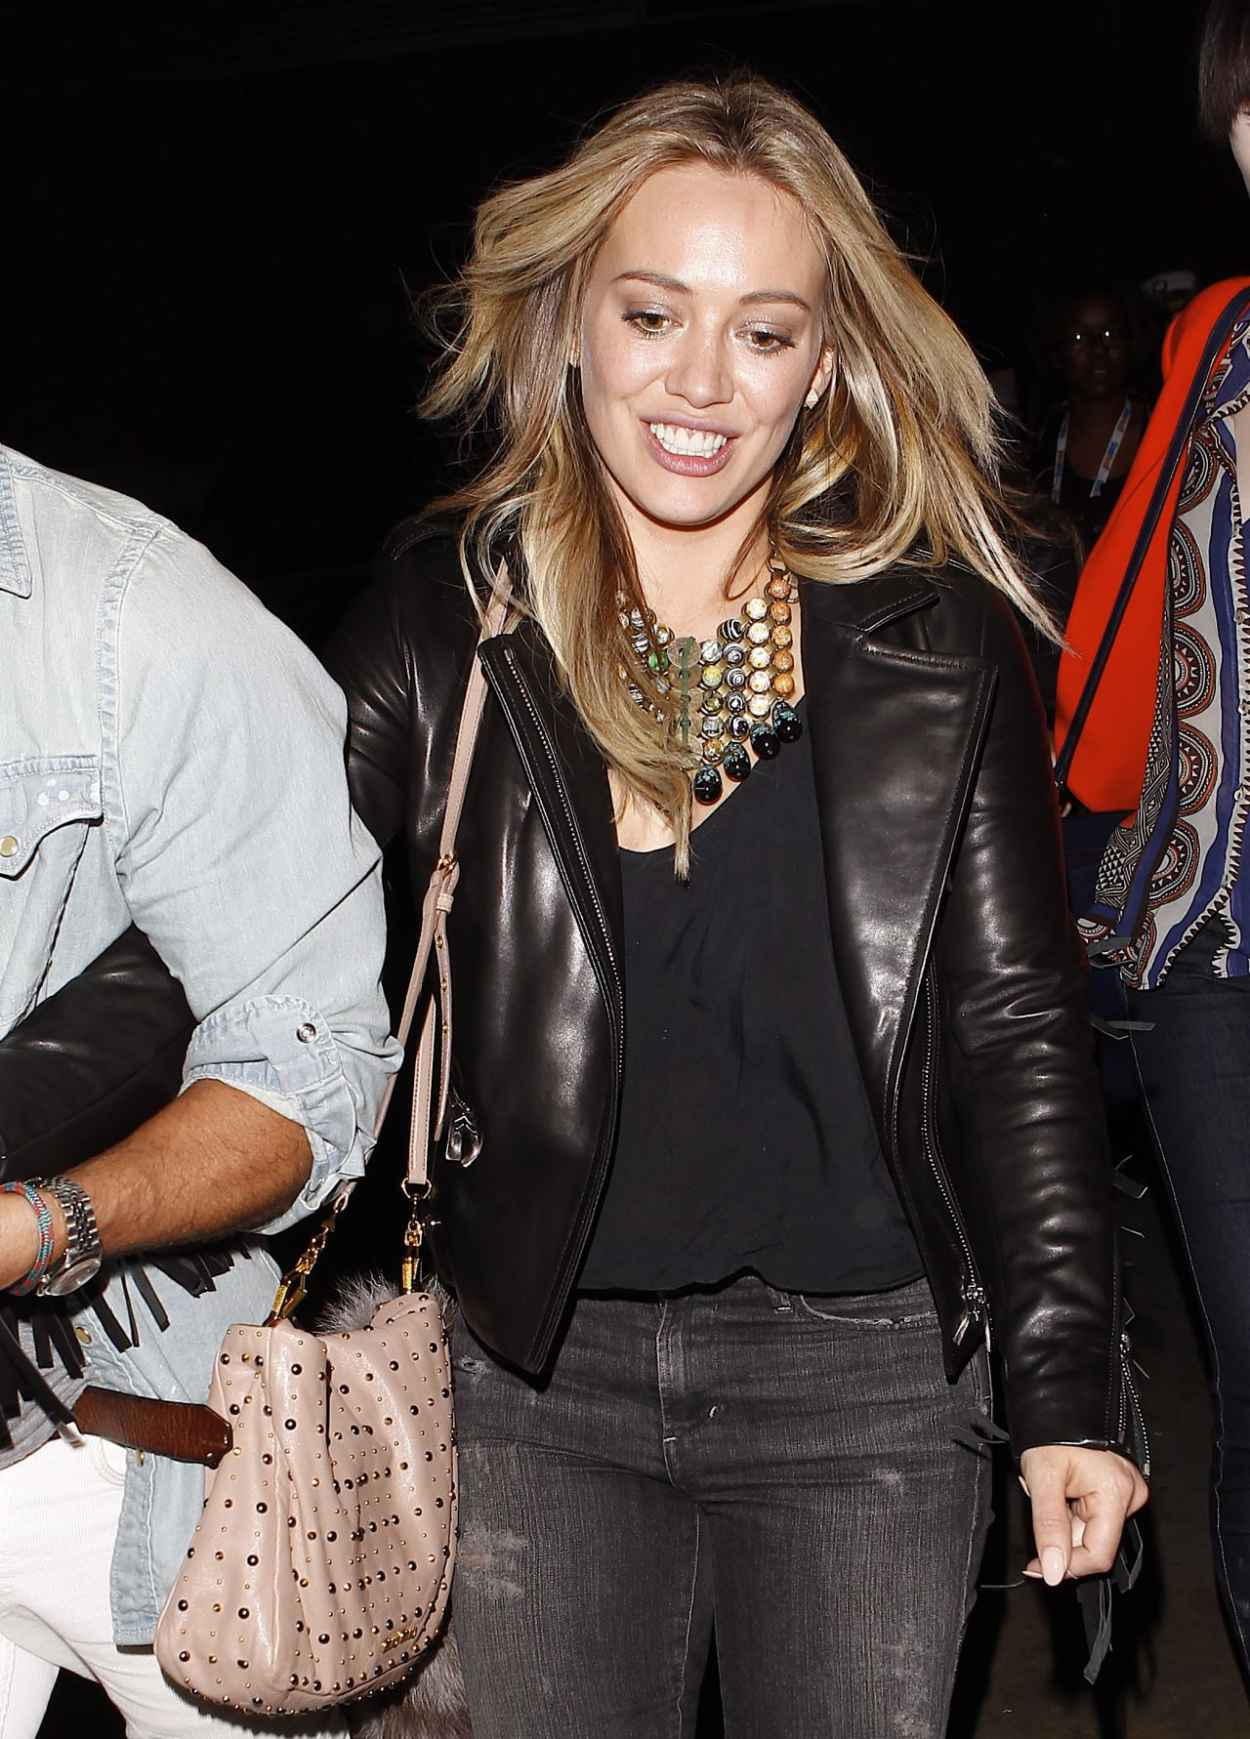 Hilary Duff at the Miley Cyrus Concert - Staples Center in Los Angeles-1